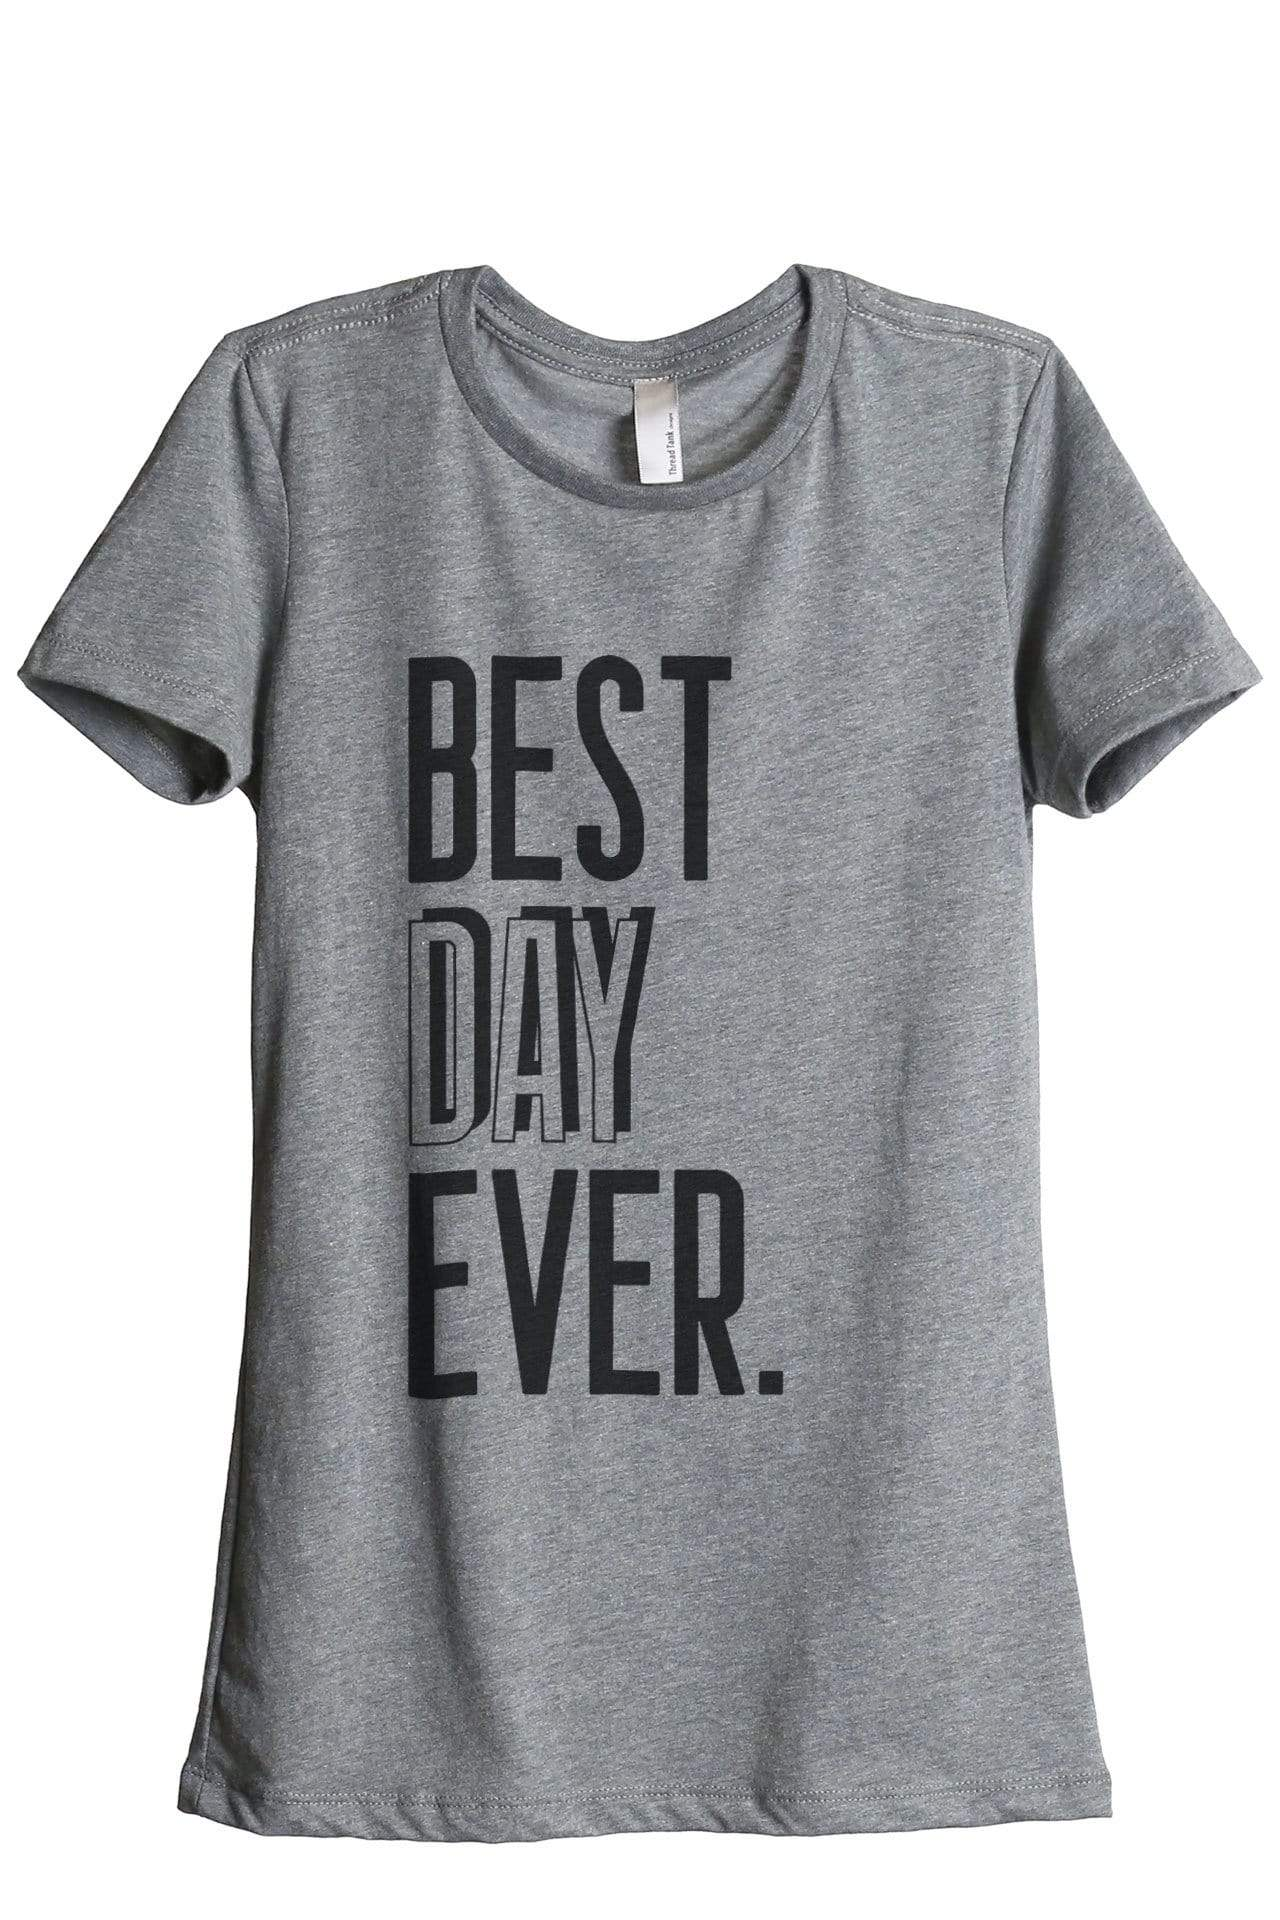 Best Day Ever - Thread Tank | Stories You Can Wear | T-Shirts, Tank Tops and Sweatshirts